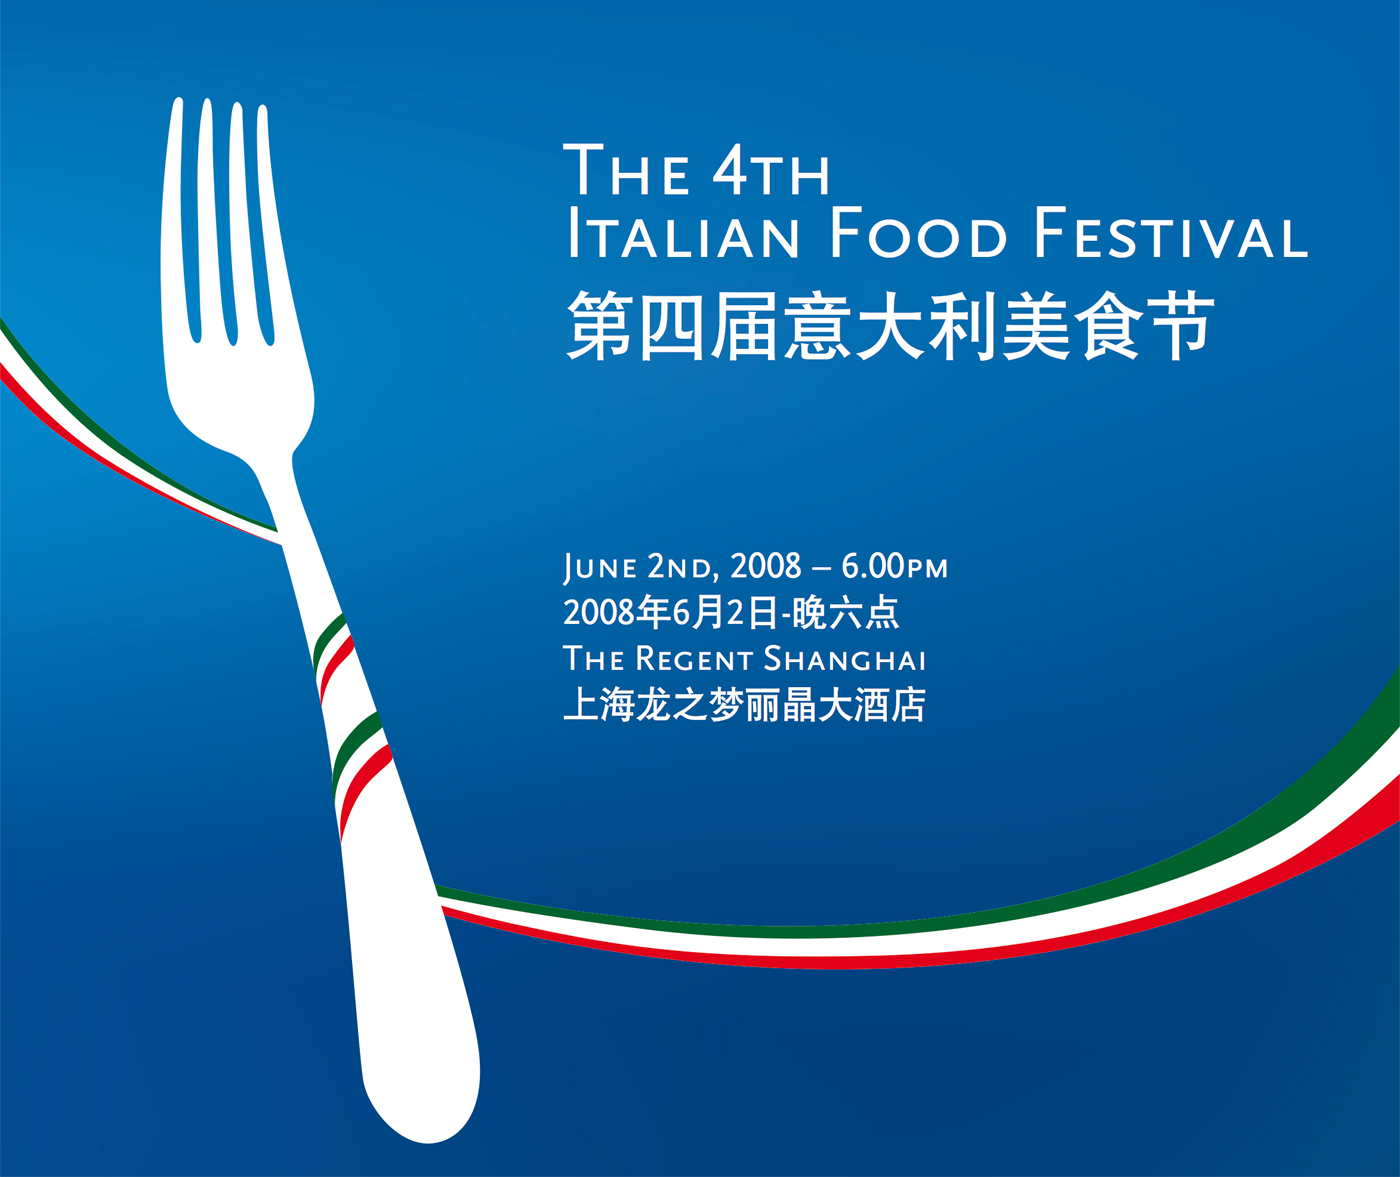 Italian Food Festival Shanghai Camera di Commercio Italiana in Cina